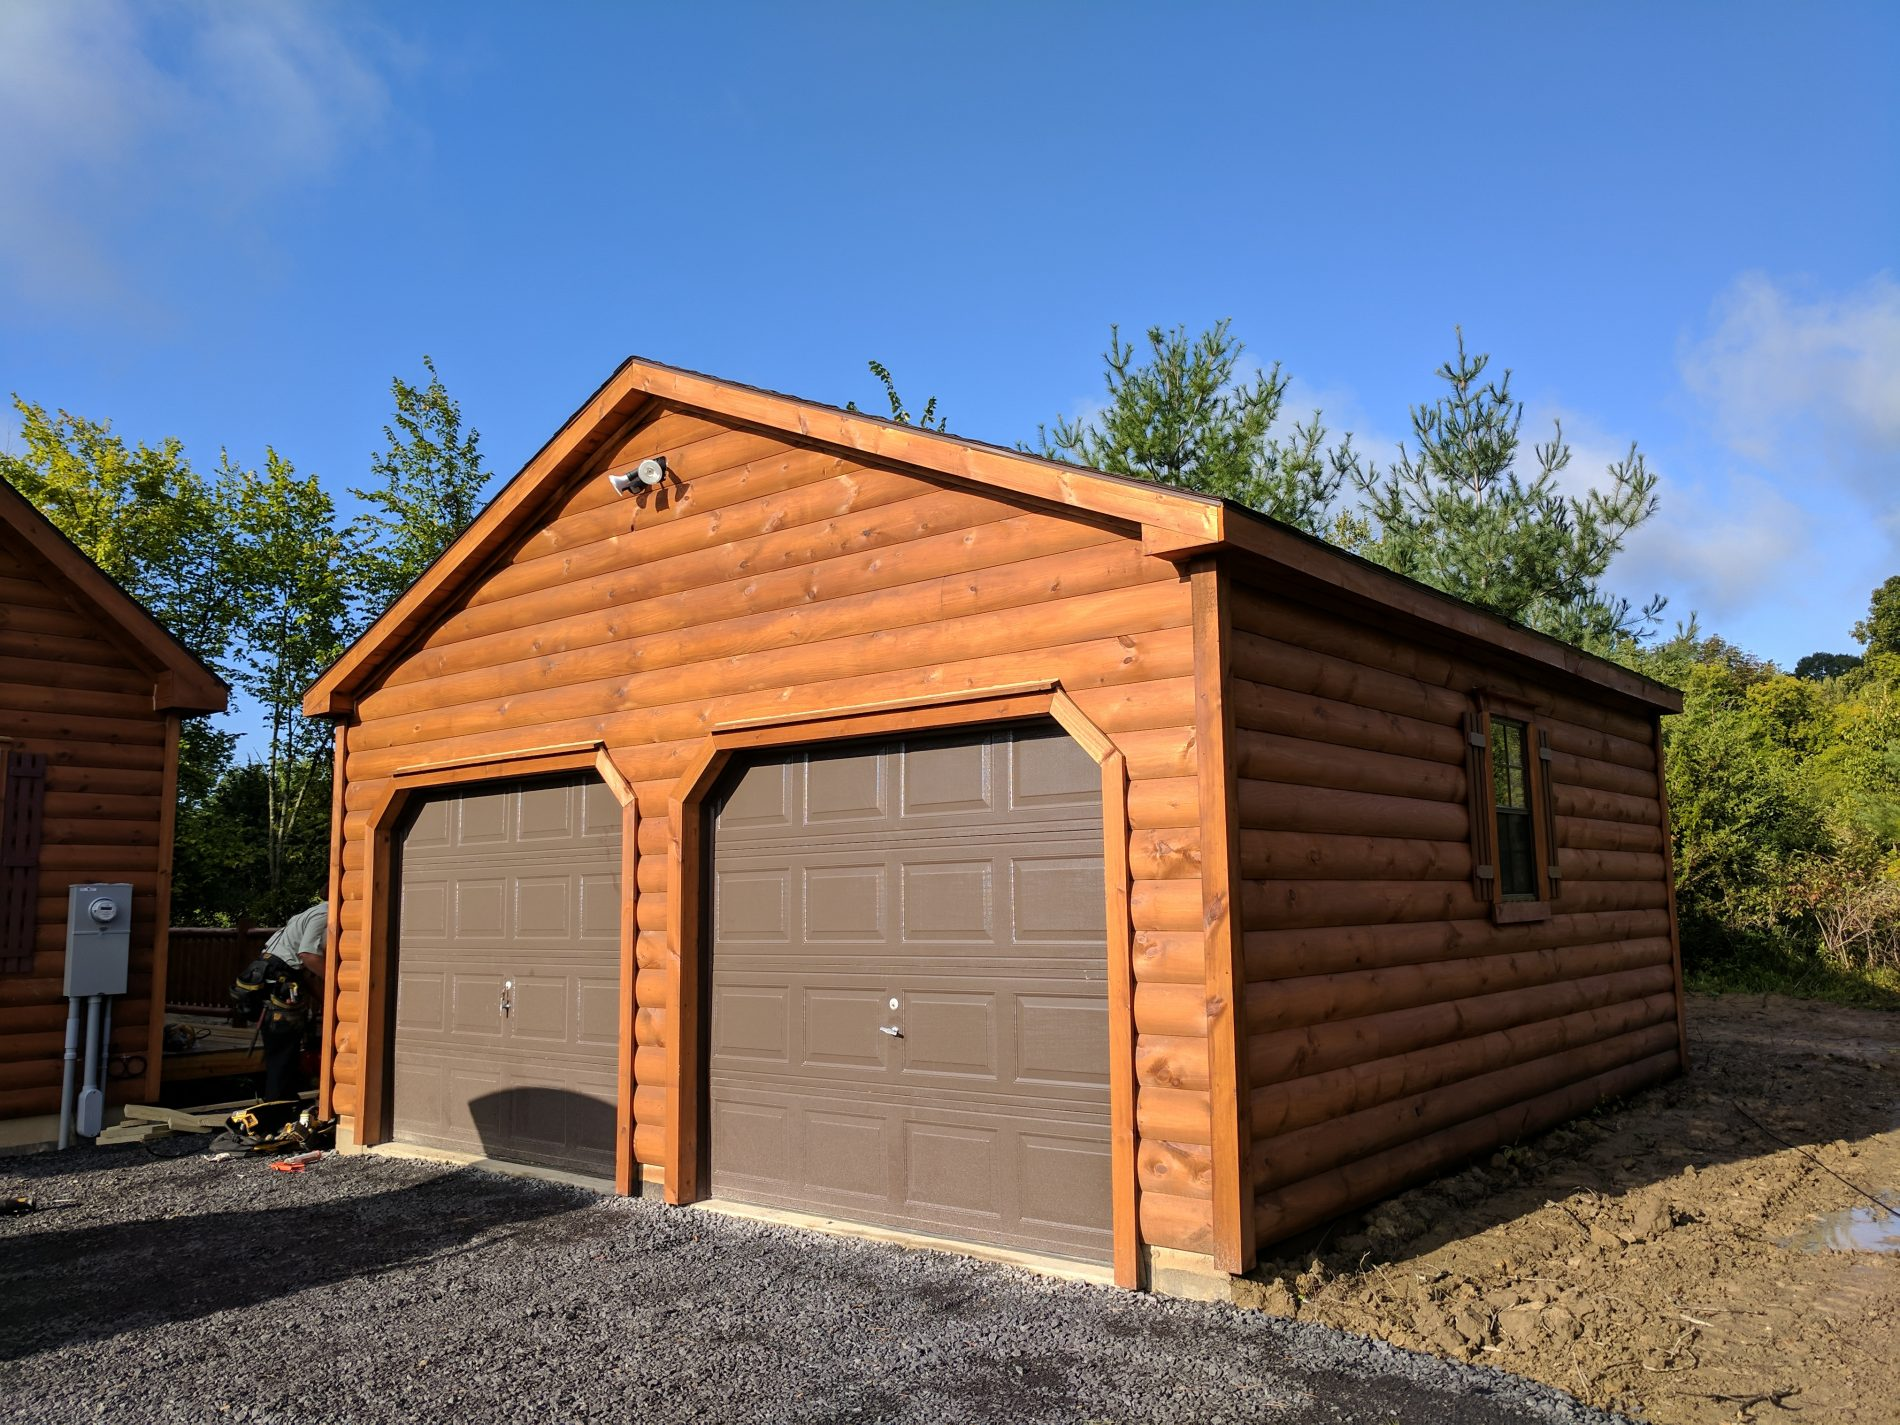 Log cabin garage kits my marketing journey for Log cabin garages for sale